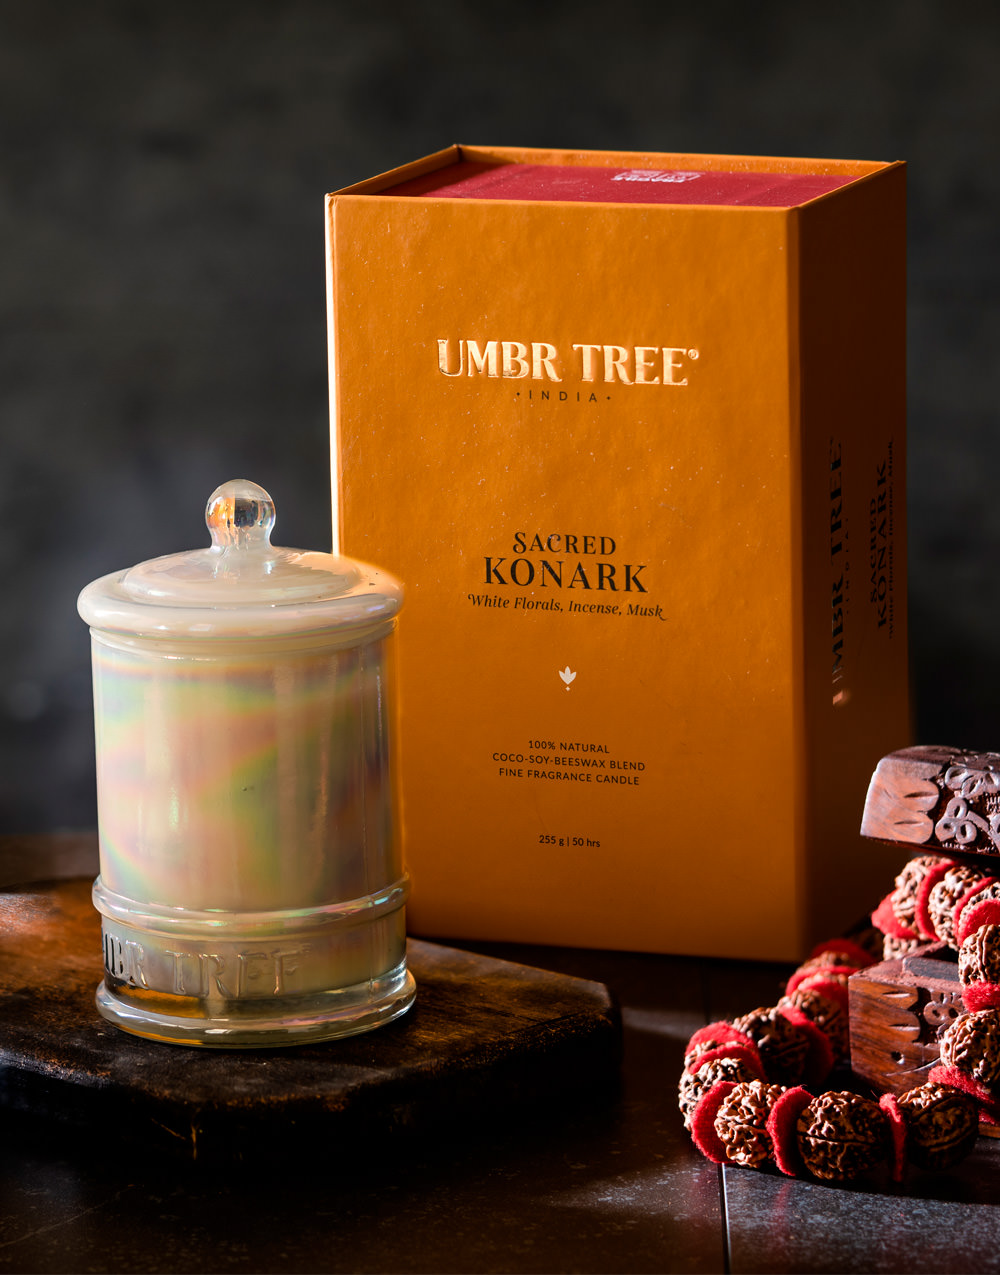 Umbr Tree fine home fragrance candle. Soul of India Collection. Sacred Konark. White florals, incense, musk, ghee, sweets, sugar, wet stones. Home perfume. Soy wax, Coconut wax, palm wax, bees wax. All natural wax fragrance candles. Scented candles. Bangalore India candles. gift set candles. Fragrance gift set candles. Home perfume candles. Gift set candles. Candle shop. Fine Home Fragrance Shop.